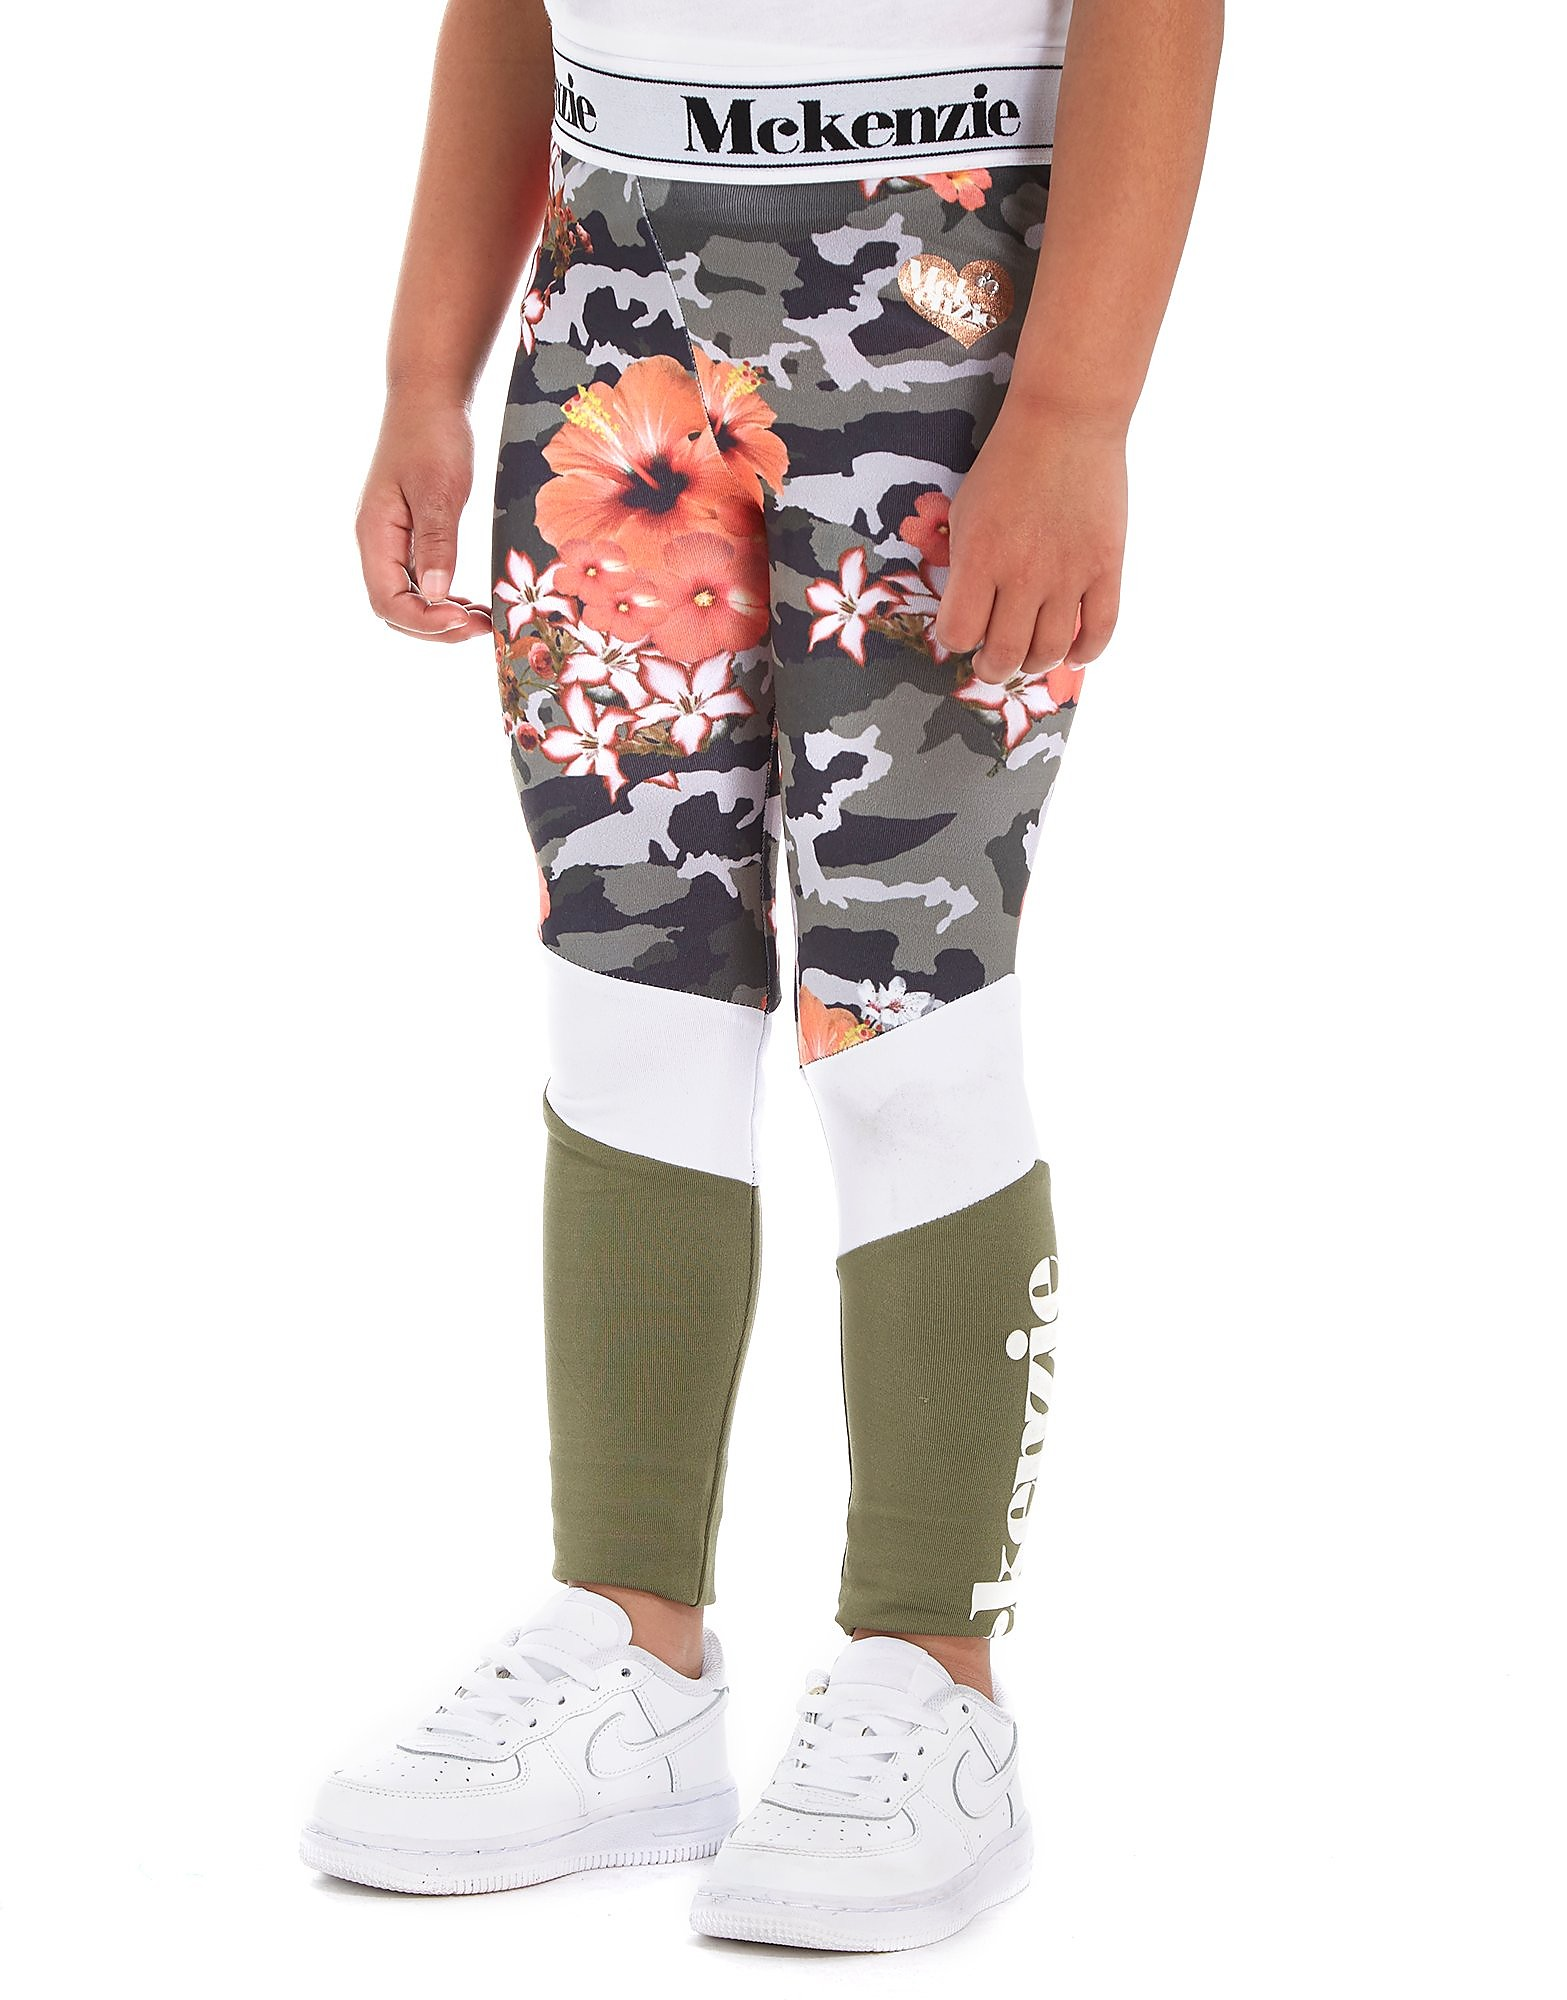 McKenzie Legging Girl's Summer Enfant